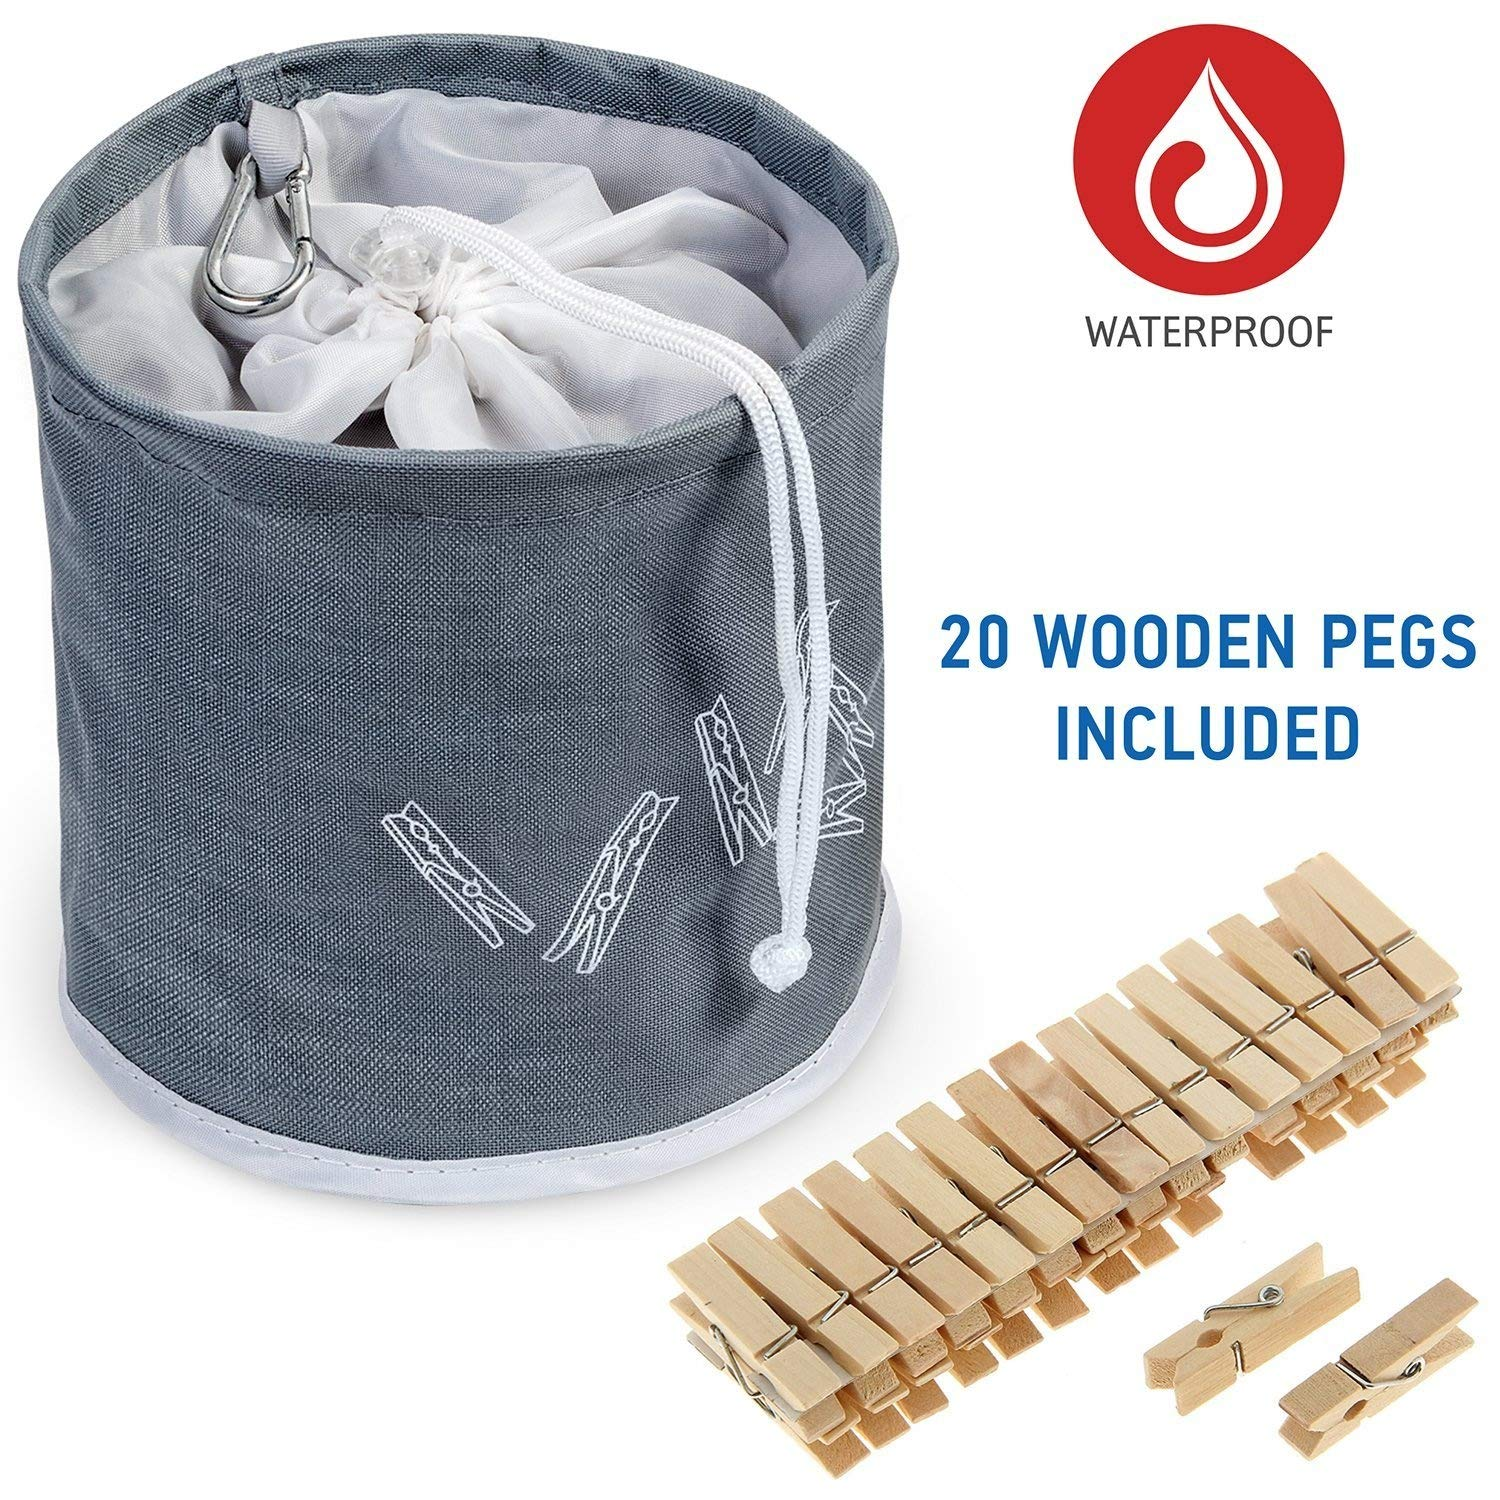 Tatkraft PEGGY Clothespin Bag Hanging Waterproof+ 20 Pins Starter Kit Included, Drawstring Closure